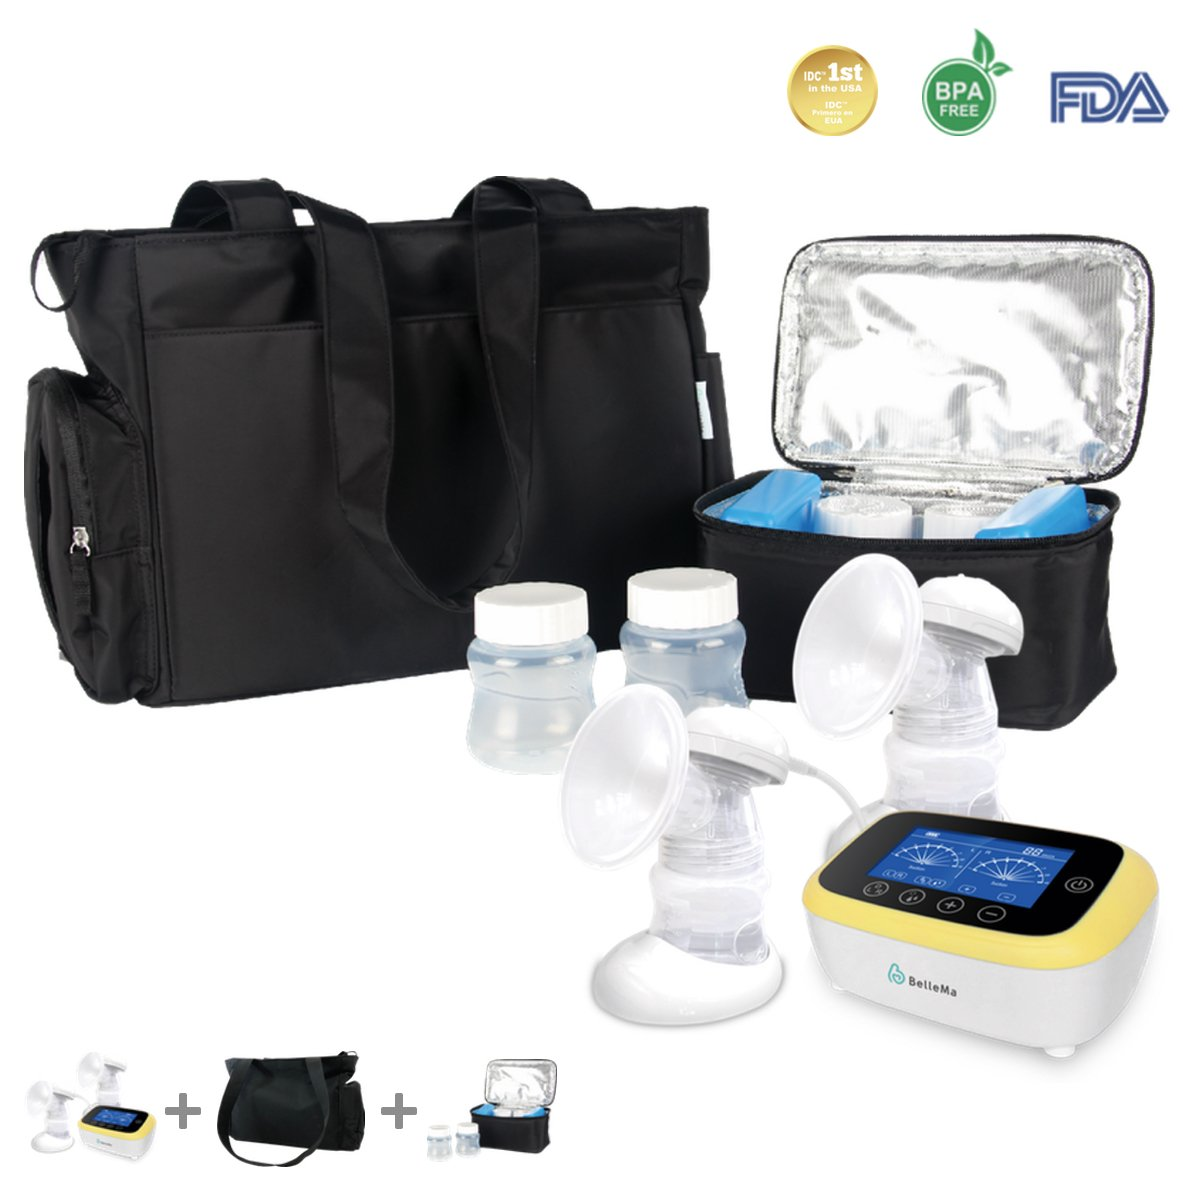 BelleMa S5 Single / Double Hospital Grade Electric Breast Pumps, With IDC ™ technology, Touch Screen Cordless ( Value Pack )